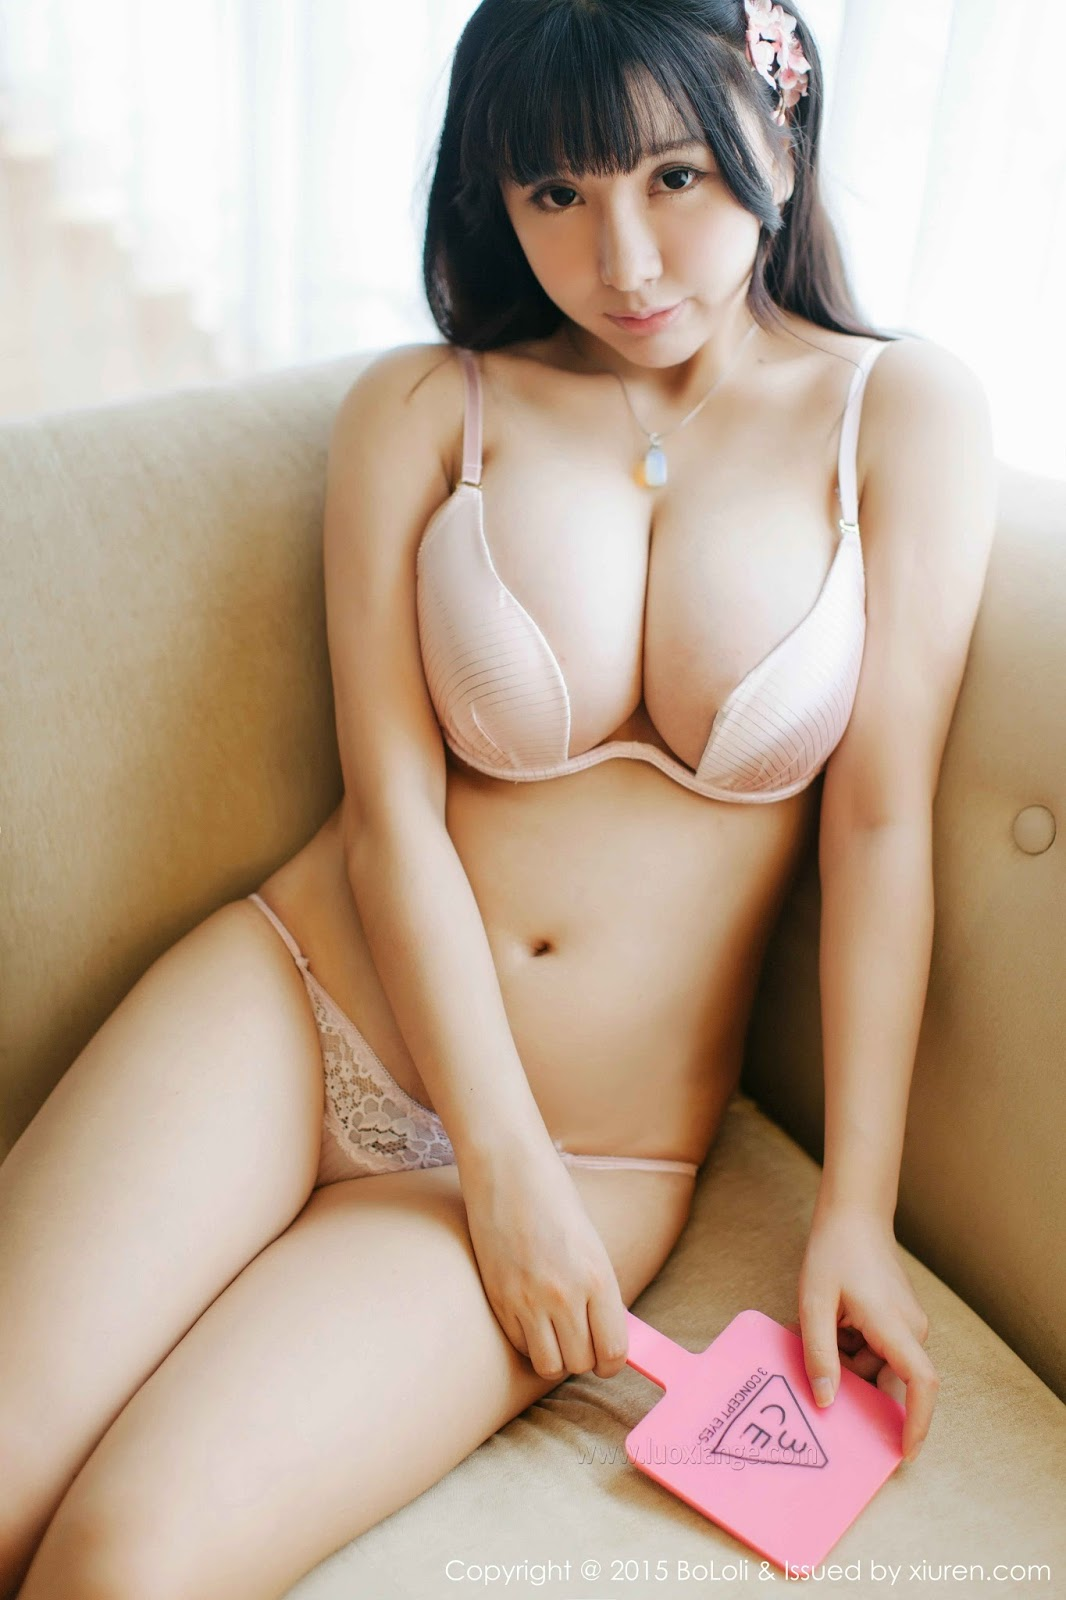 Chinese nude model in amazing background 8